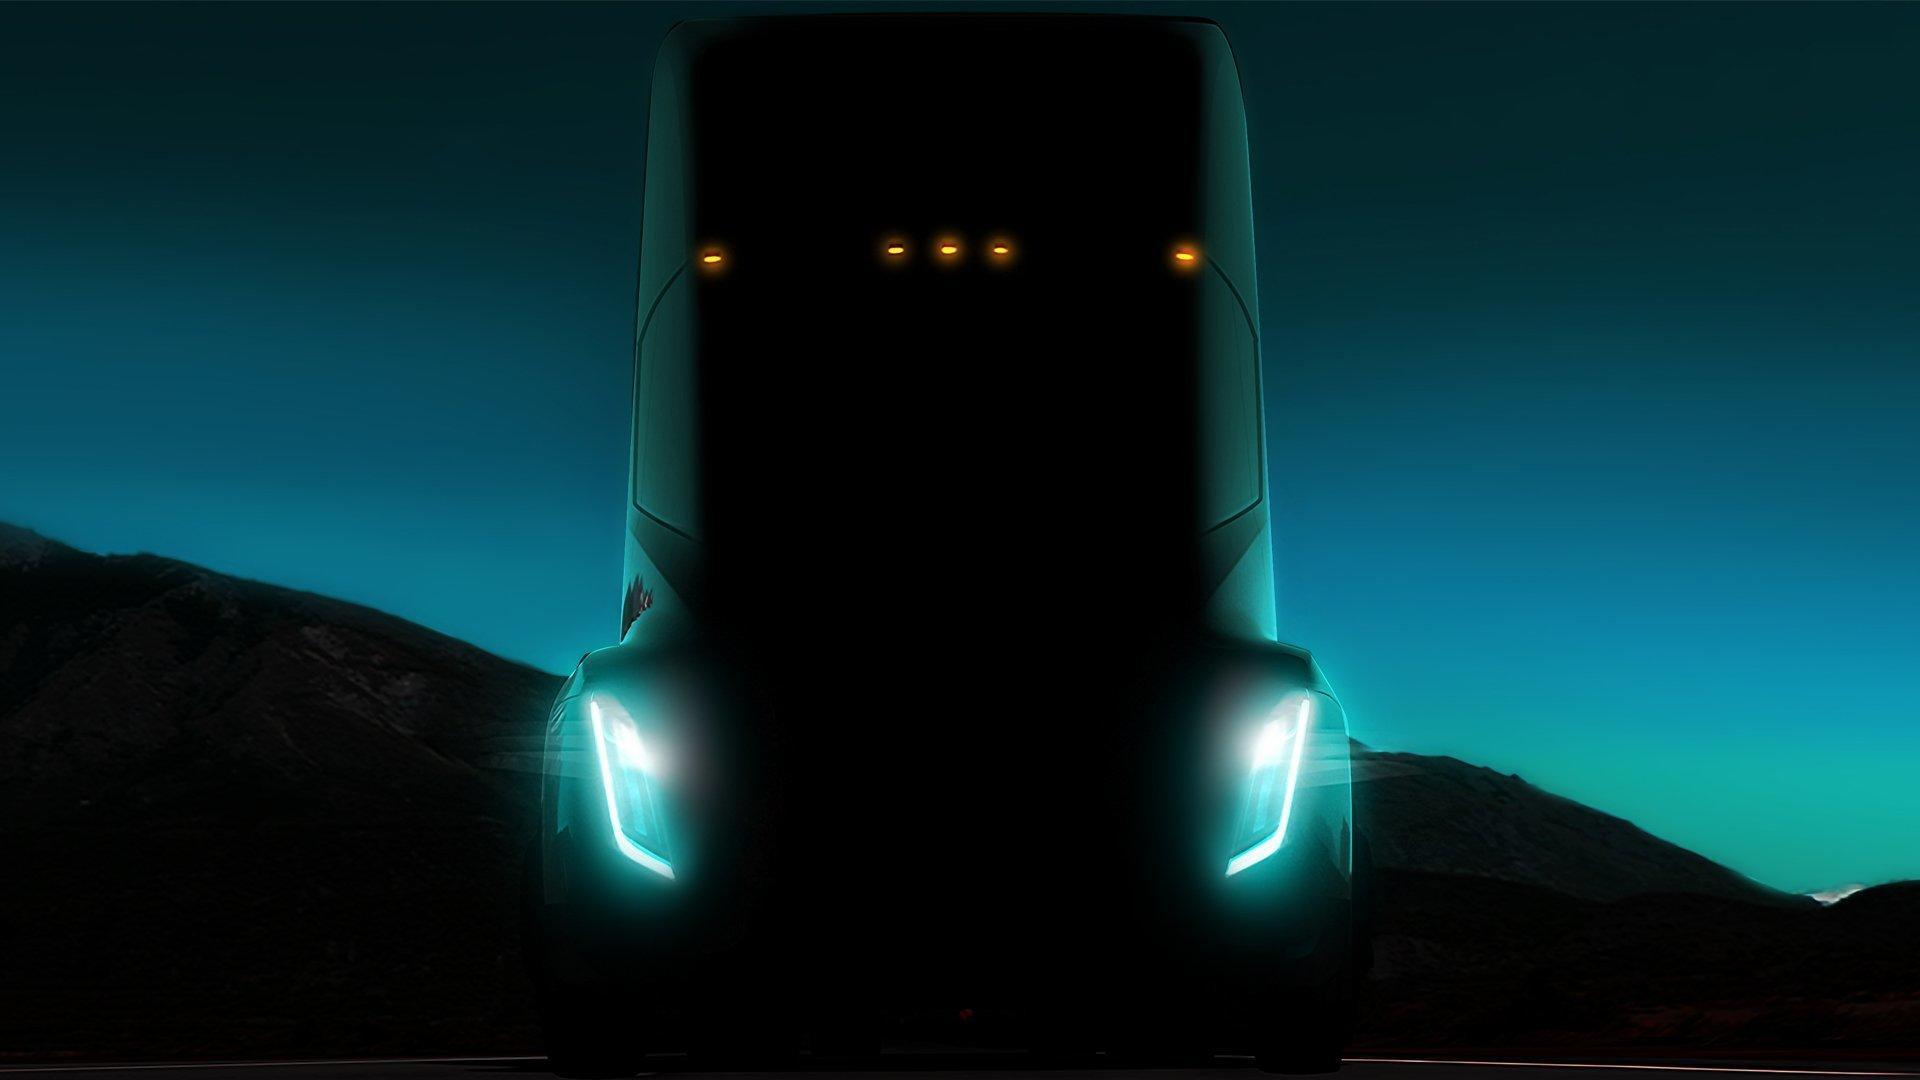 Tesla's entry into truck-making presents a whole new challenge for Elon Musk